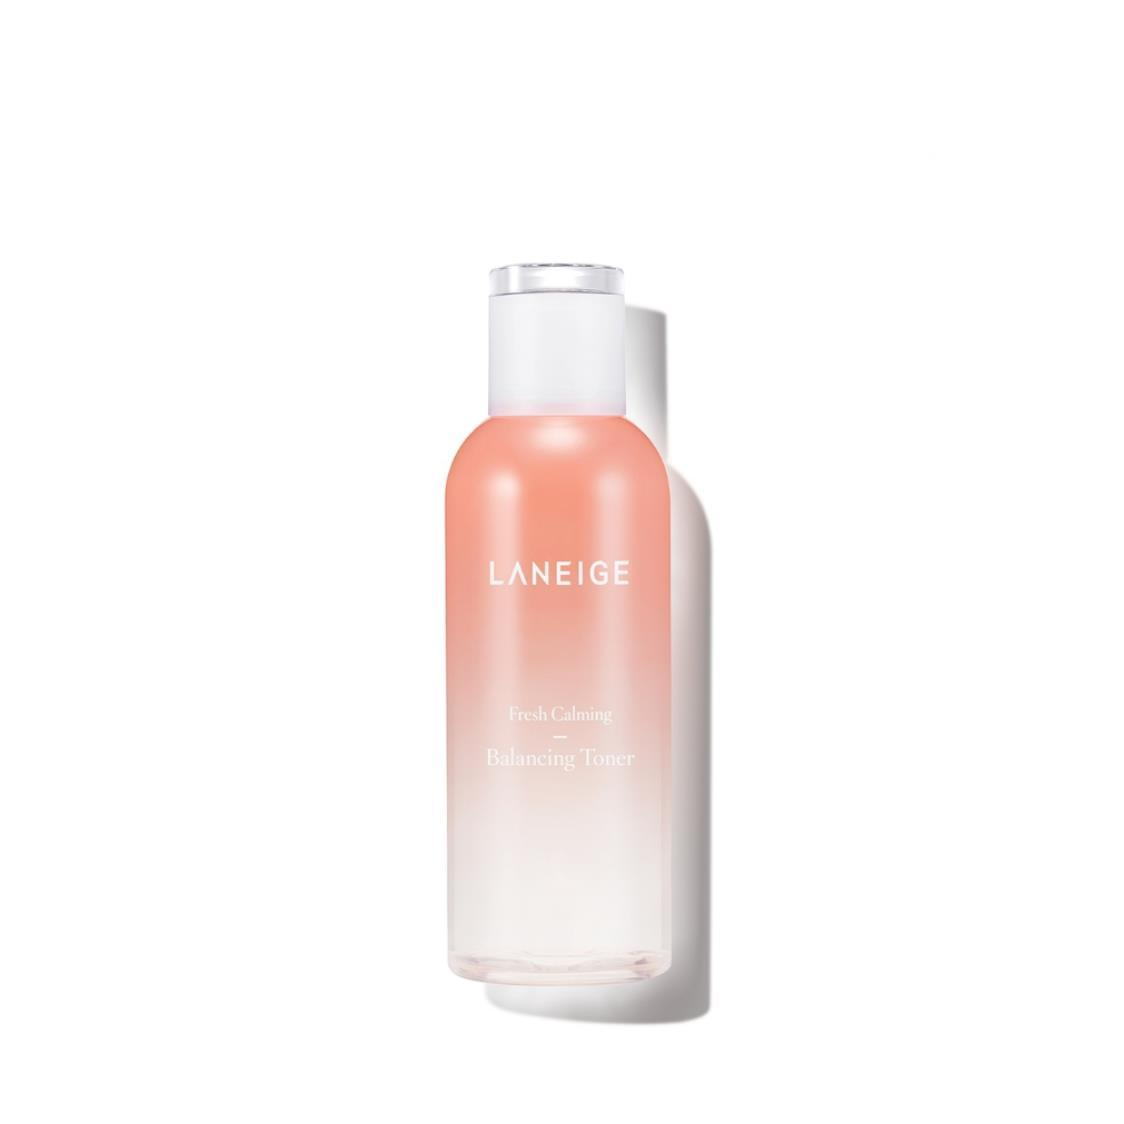 Fresh Calming Balancing Toner 250ml